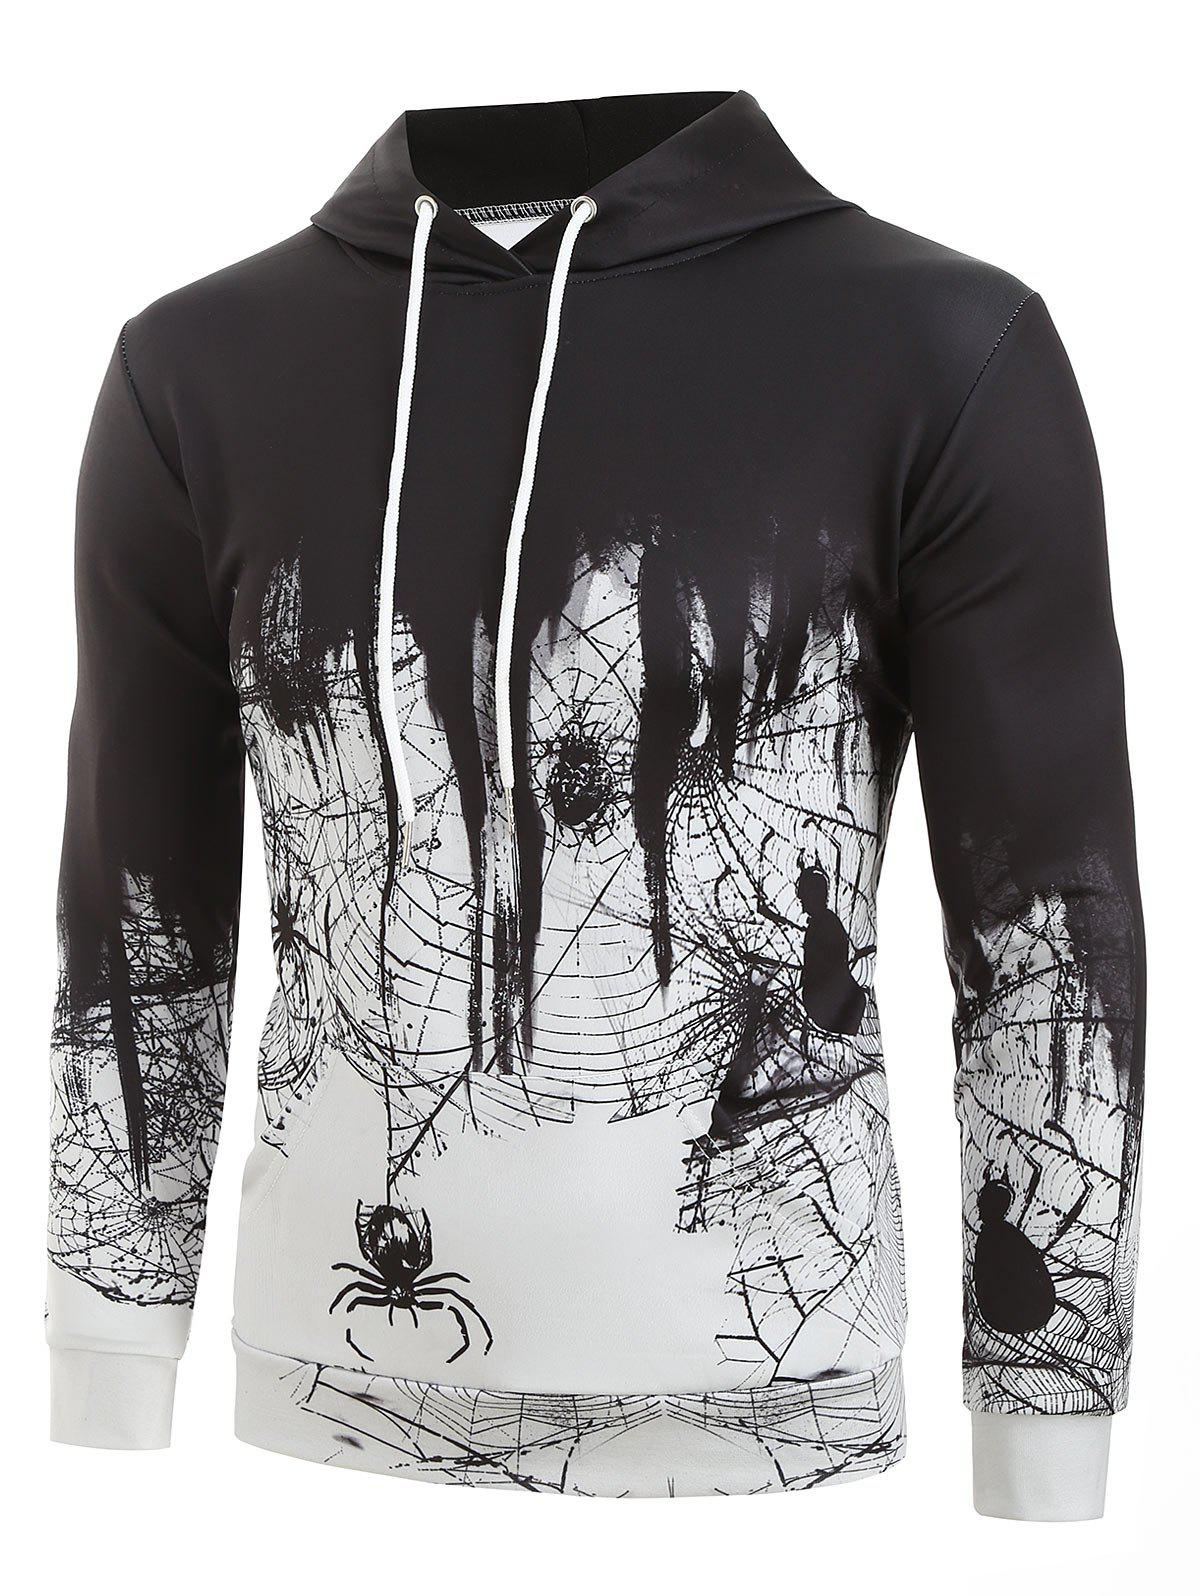 Spider Web Print Casual Hoodie - LIGHT GRAY M